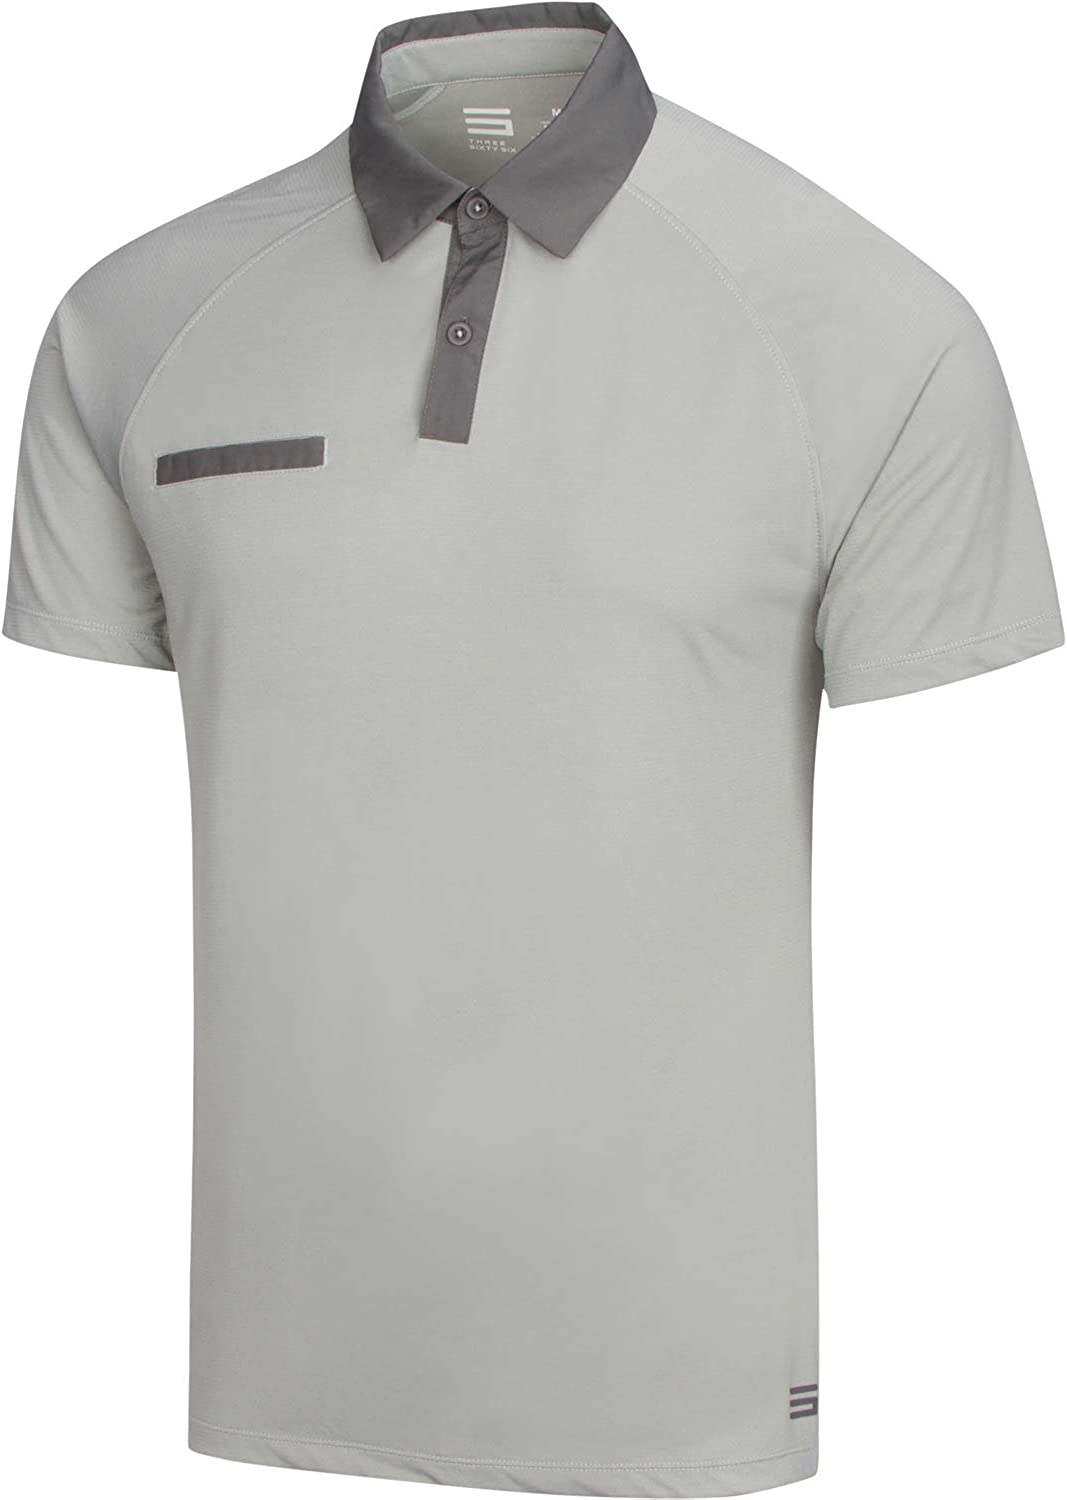 Dry Fit Golf Shirts for Men - Contrast Collared Mens Polo Shirt, Short Sleeve and Breathable